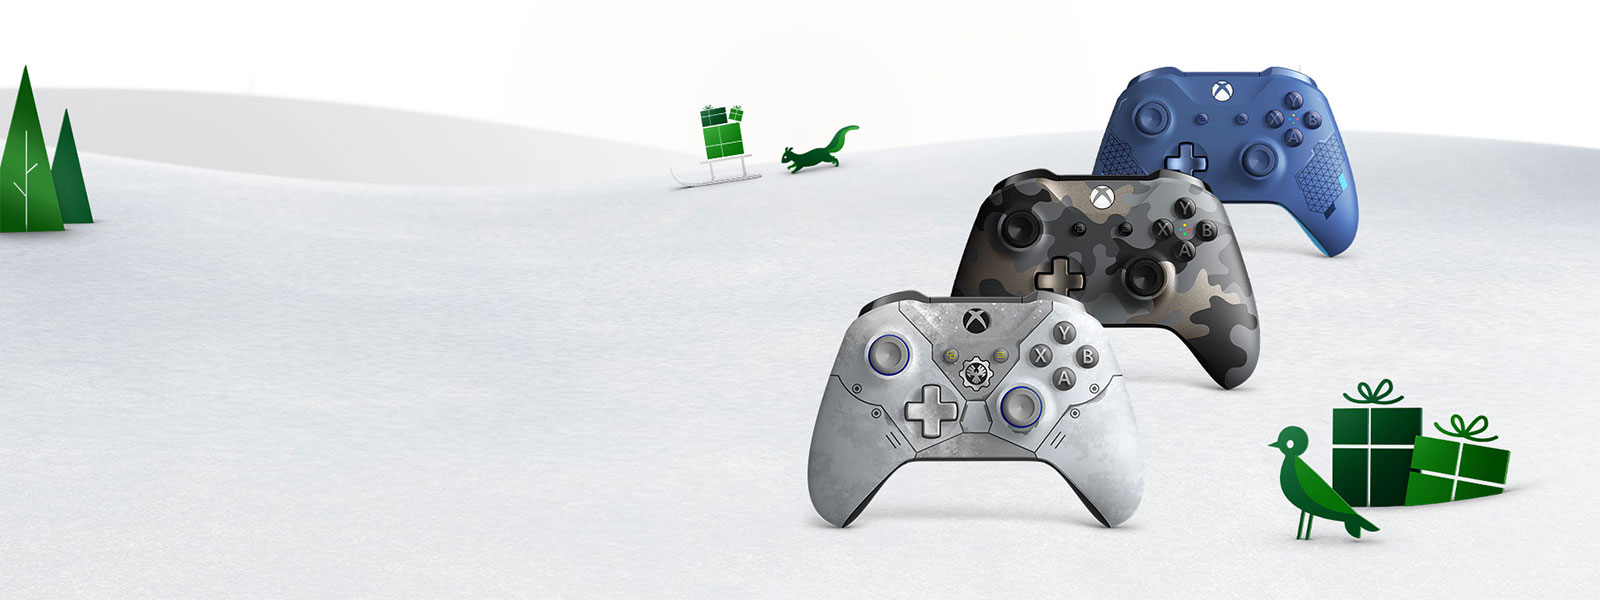 Three Xbox Wireless Controllers sit in a snowy field, surrounded by green gift boxes and woodland animals.